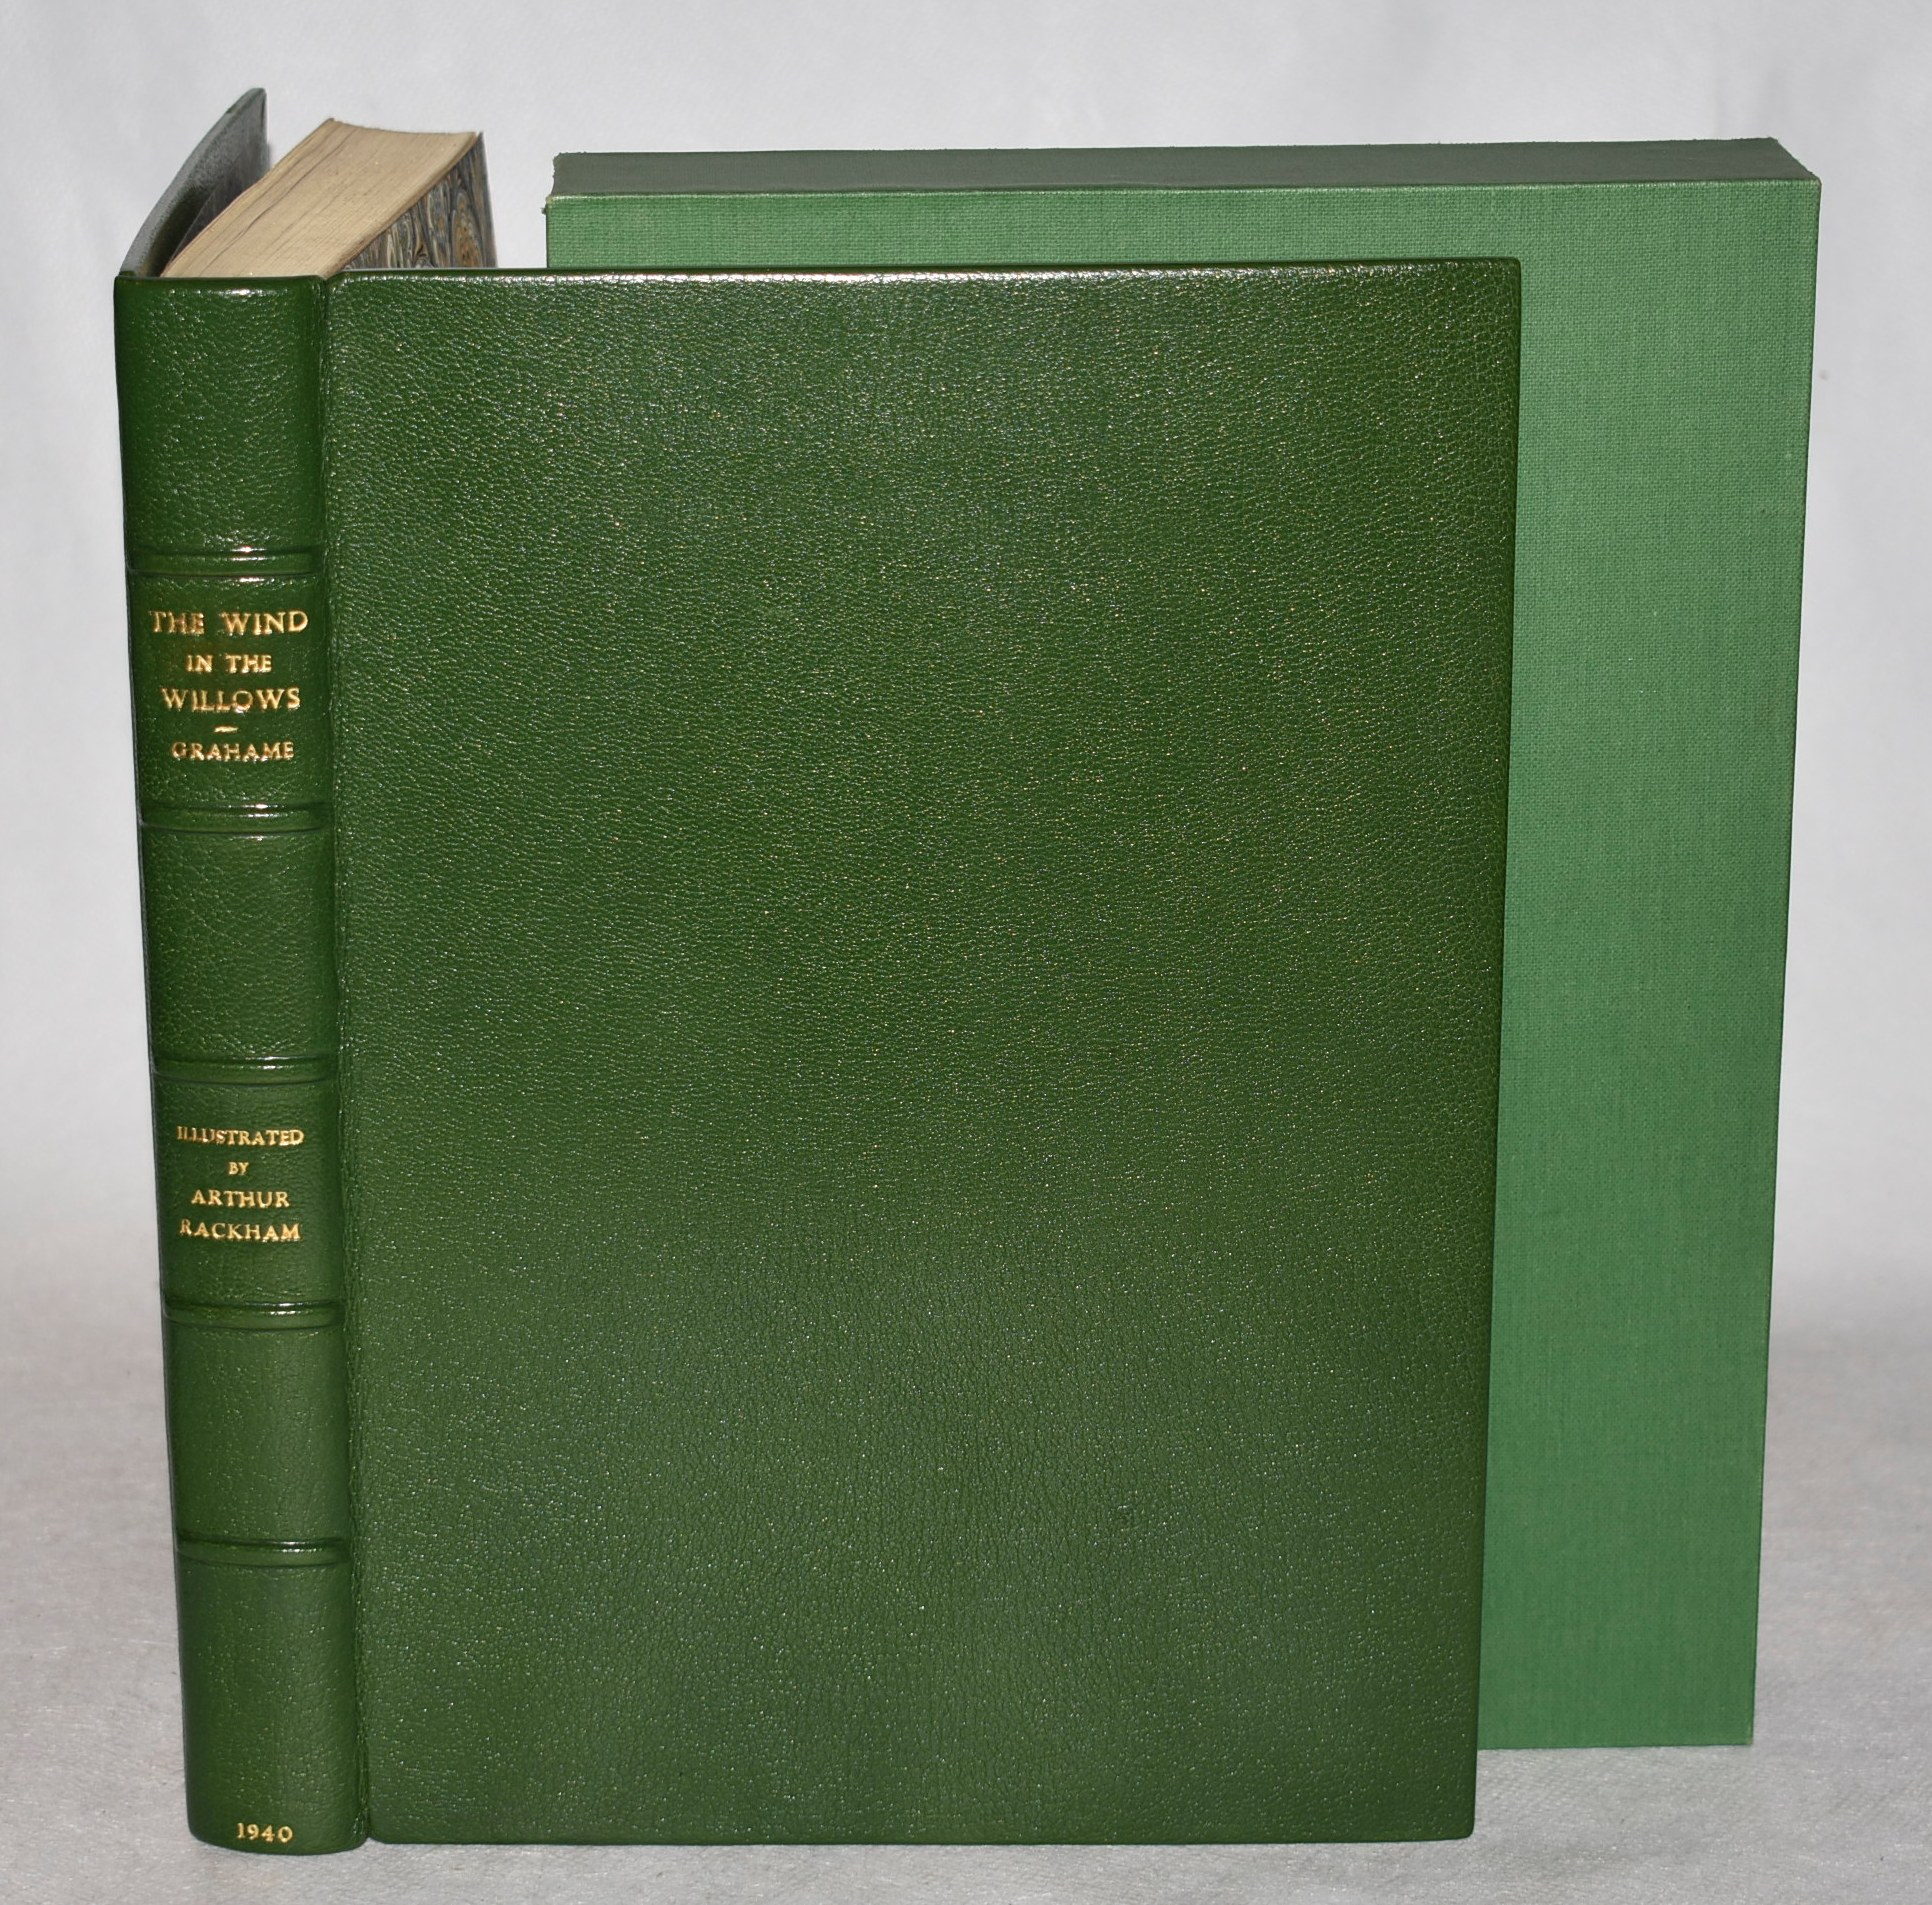 Image for The Wind in the Willows. Introduction by A. A. Milne. Limited Numbered Edition in Leather Fine Binding.